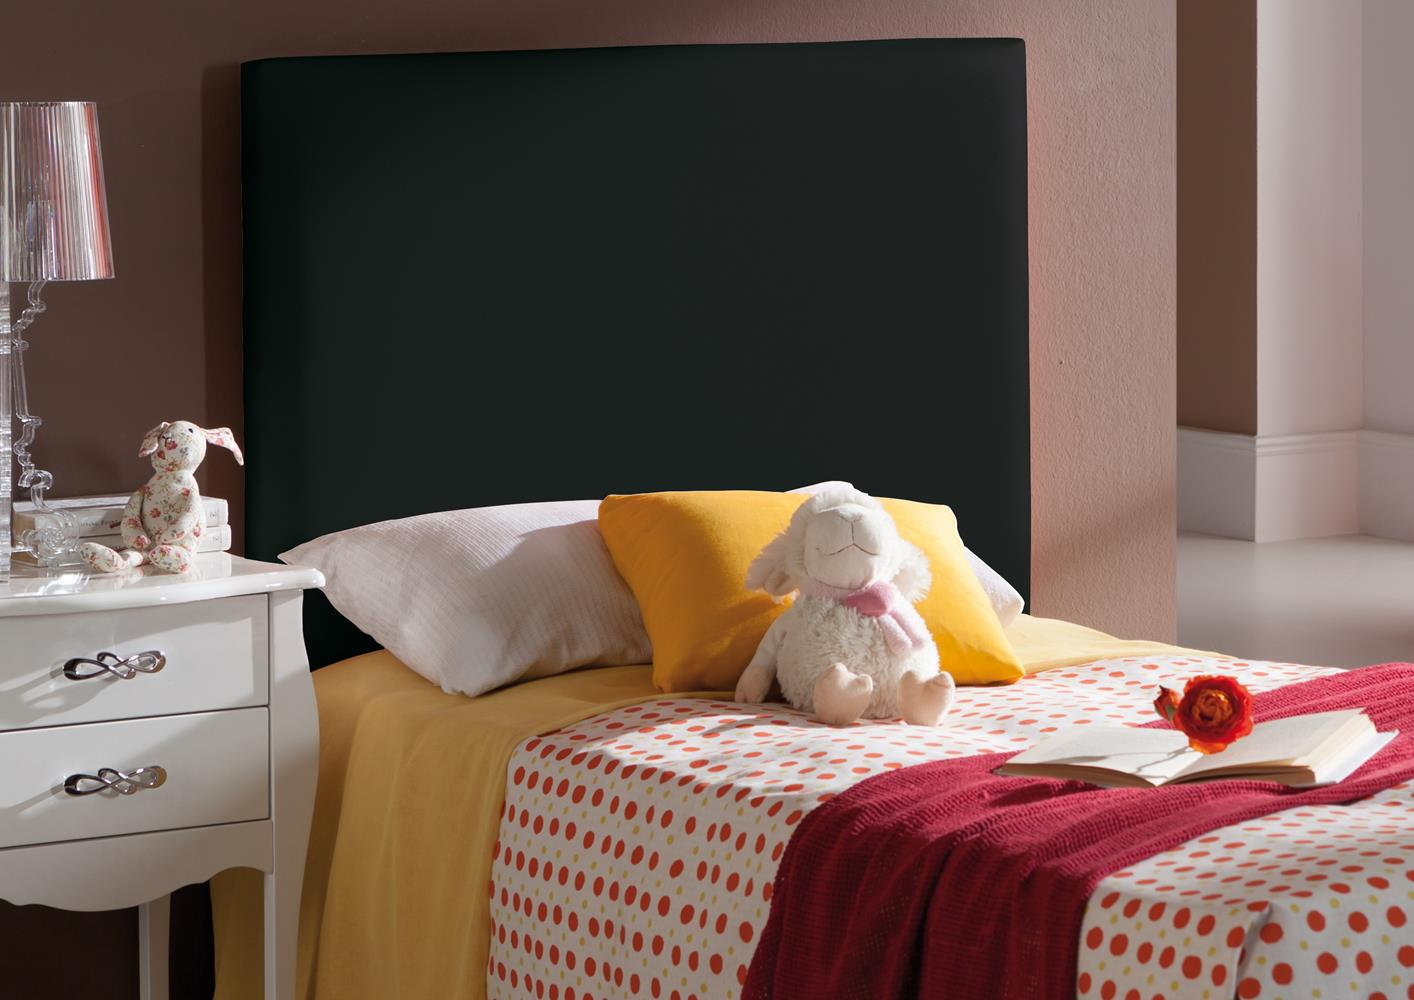 acheter votre t te de lit en pvc violet chez simeuble. Black Bedroom Furniture Sets. Home Design Ideas